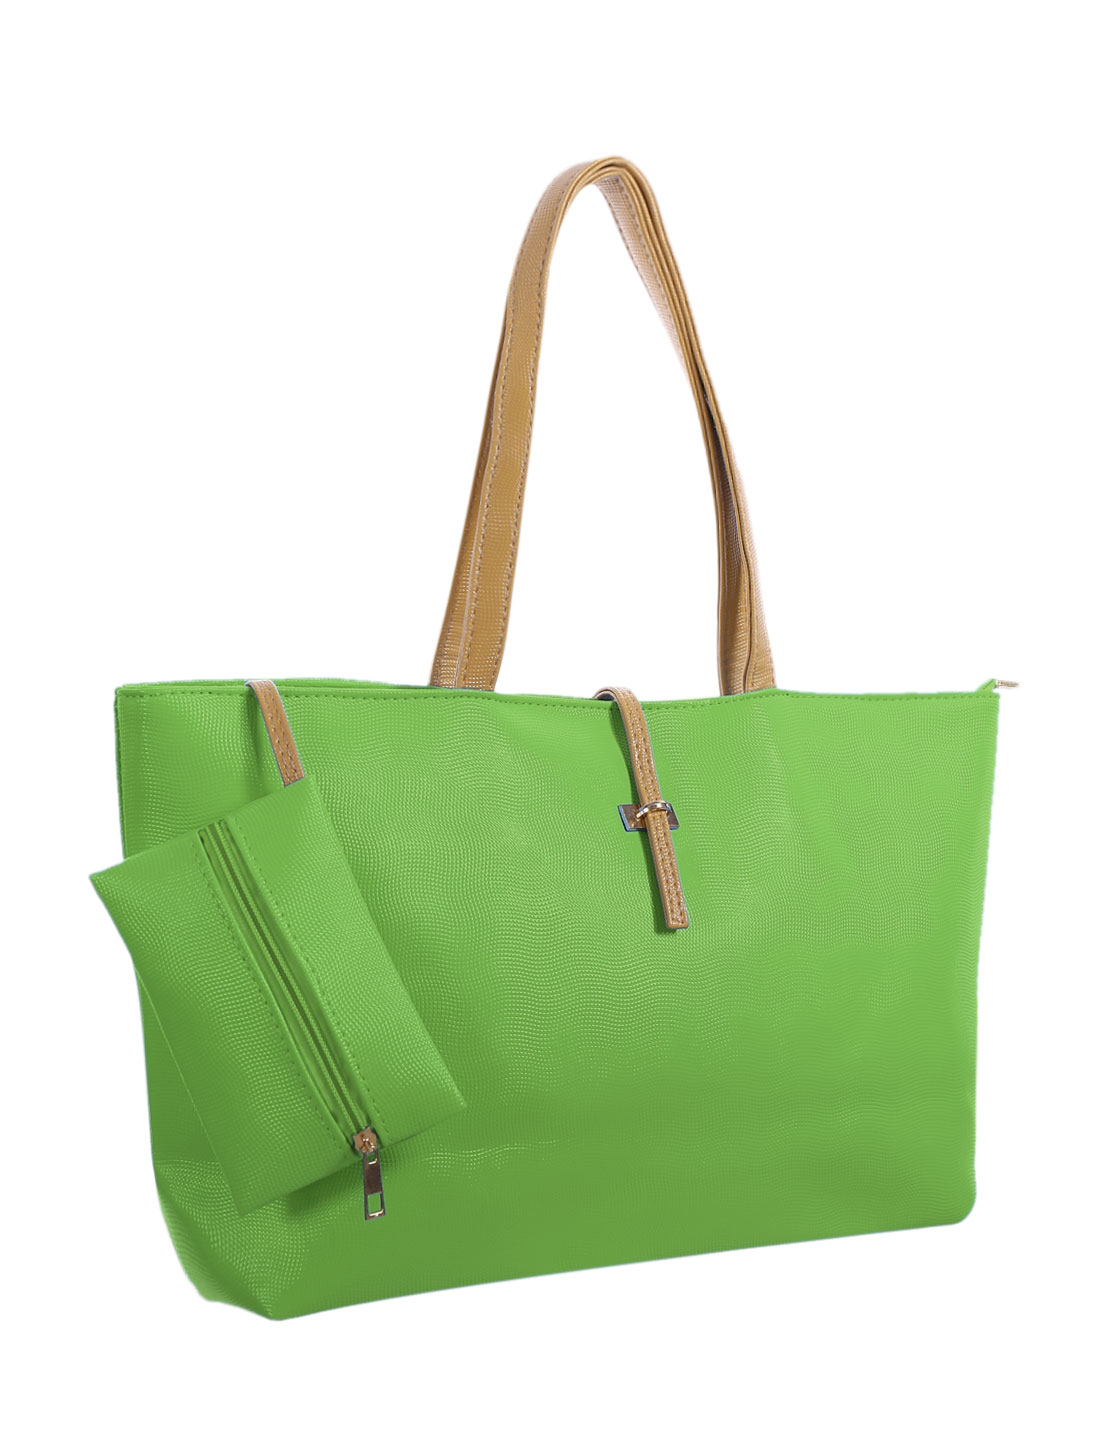 Women Contrast-Colored Handles Textured Faux Leather Tote w Pouch Green